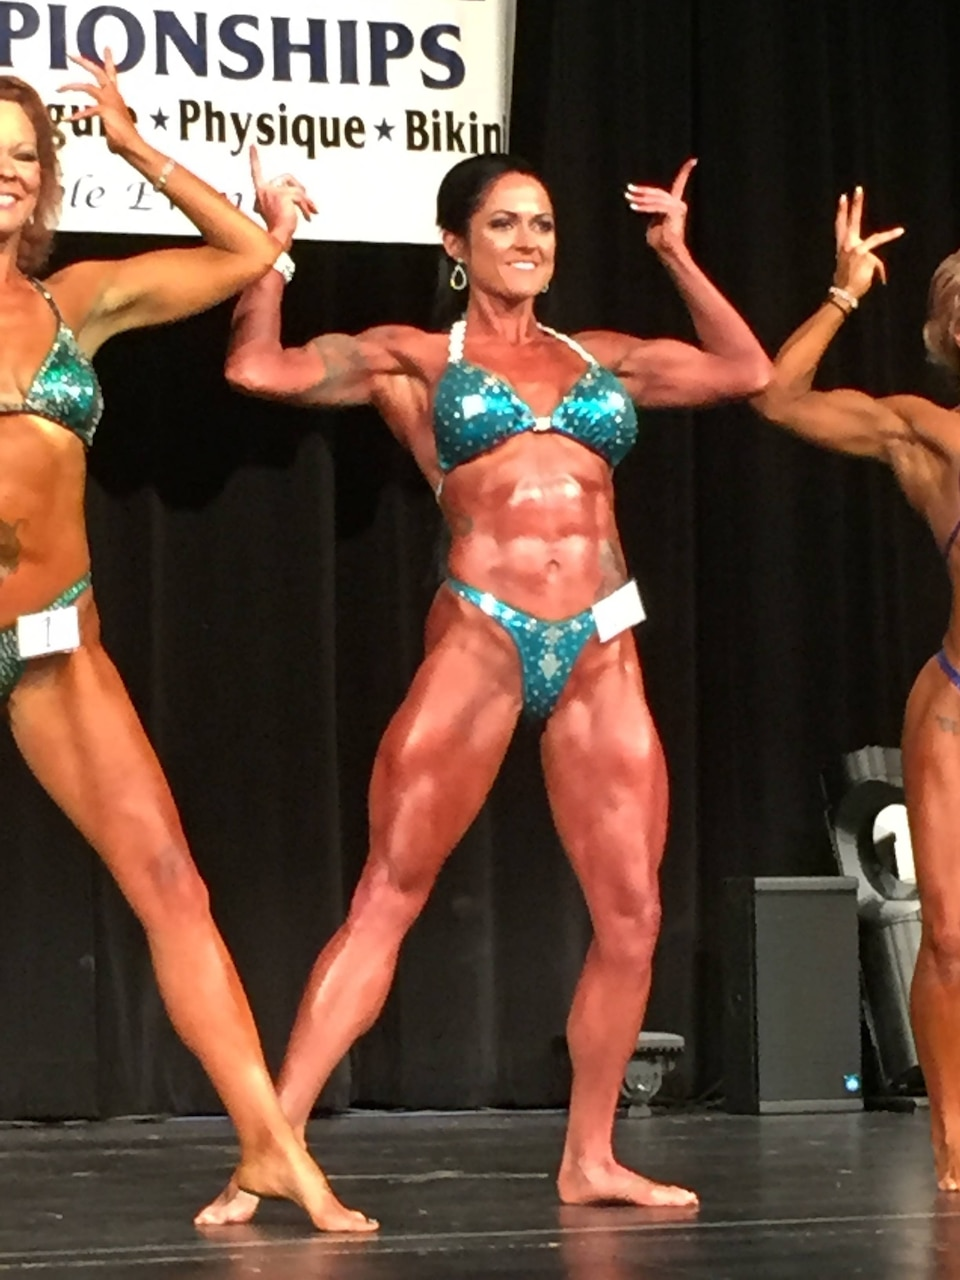 Marine Corps Staff Sgt. Annemarie E. Baker strikes a pose in the women's physique competition during the 2016 National Physique Committee Gran Prix Natural competition in Rockford, Ill., May 14, 2016. Women like Baker have proven bodybuilding competitions no longer belong exclusively to men, as more women -- and especially, mothers -- have started competing. Marine Corps photo by Staff Sgt. Robert L. Fisher III